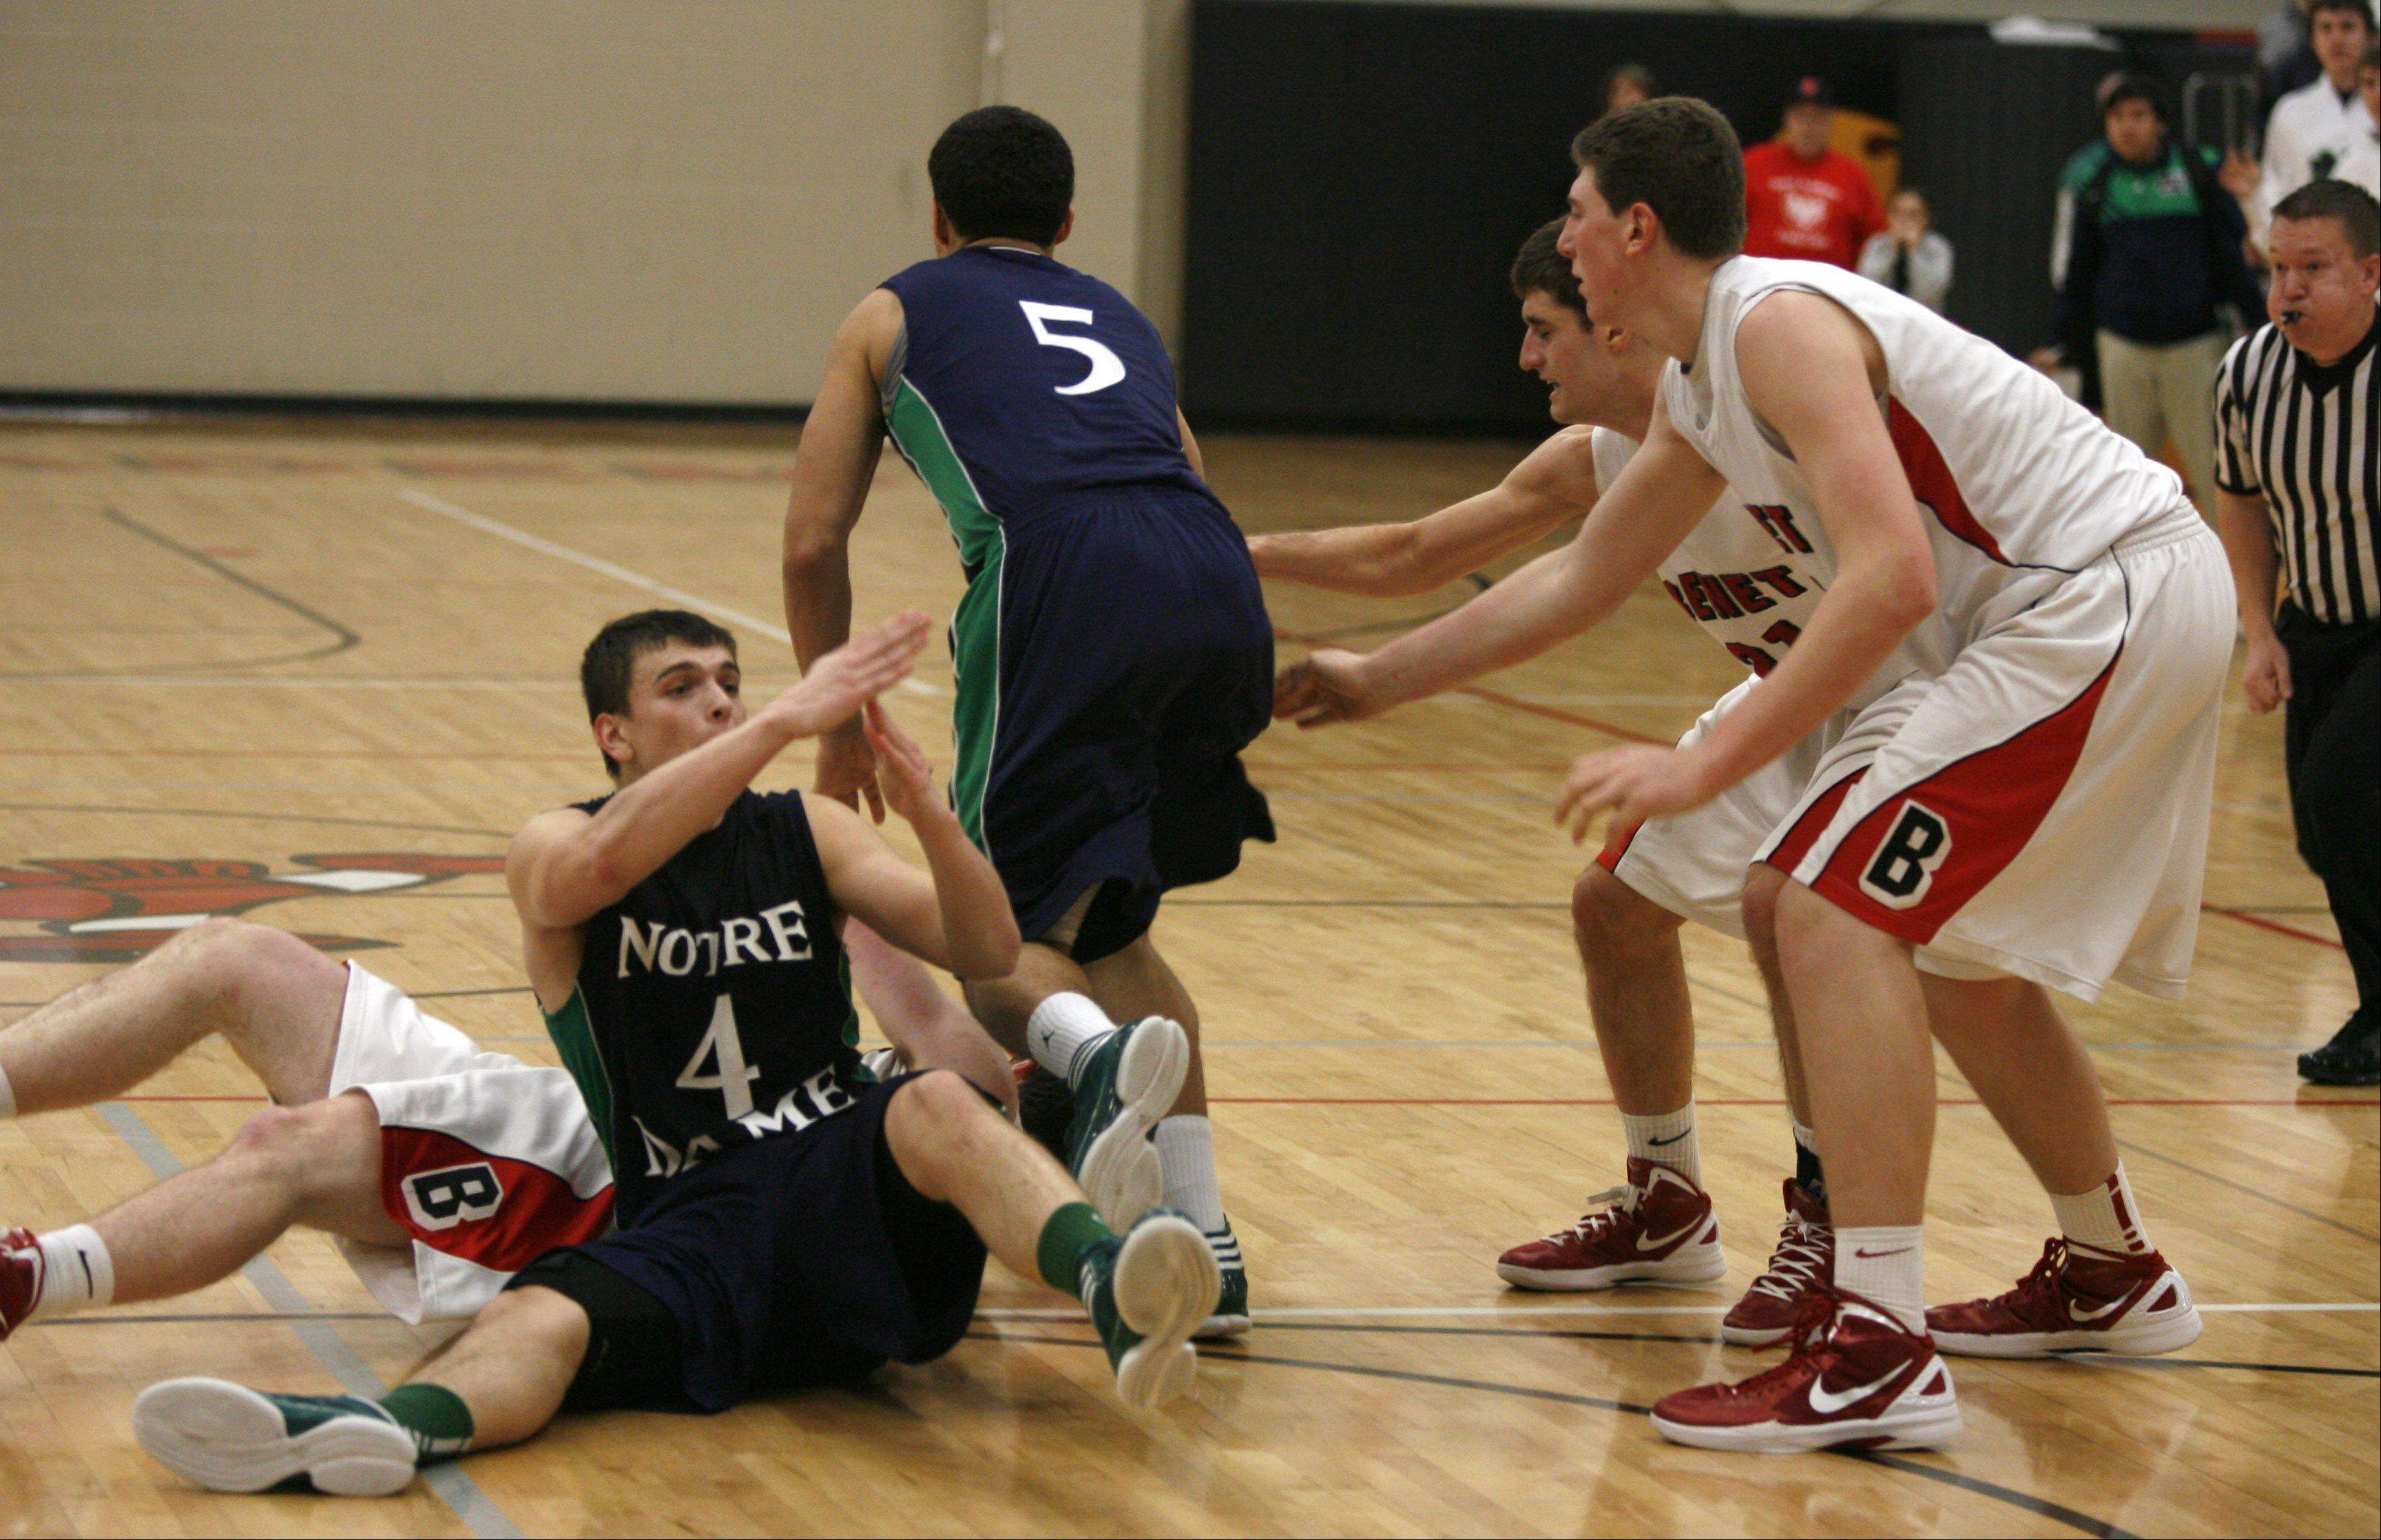 Benet Academy hosted Notre Dame Friday night for boys basketball.